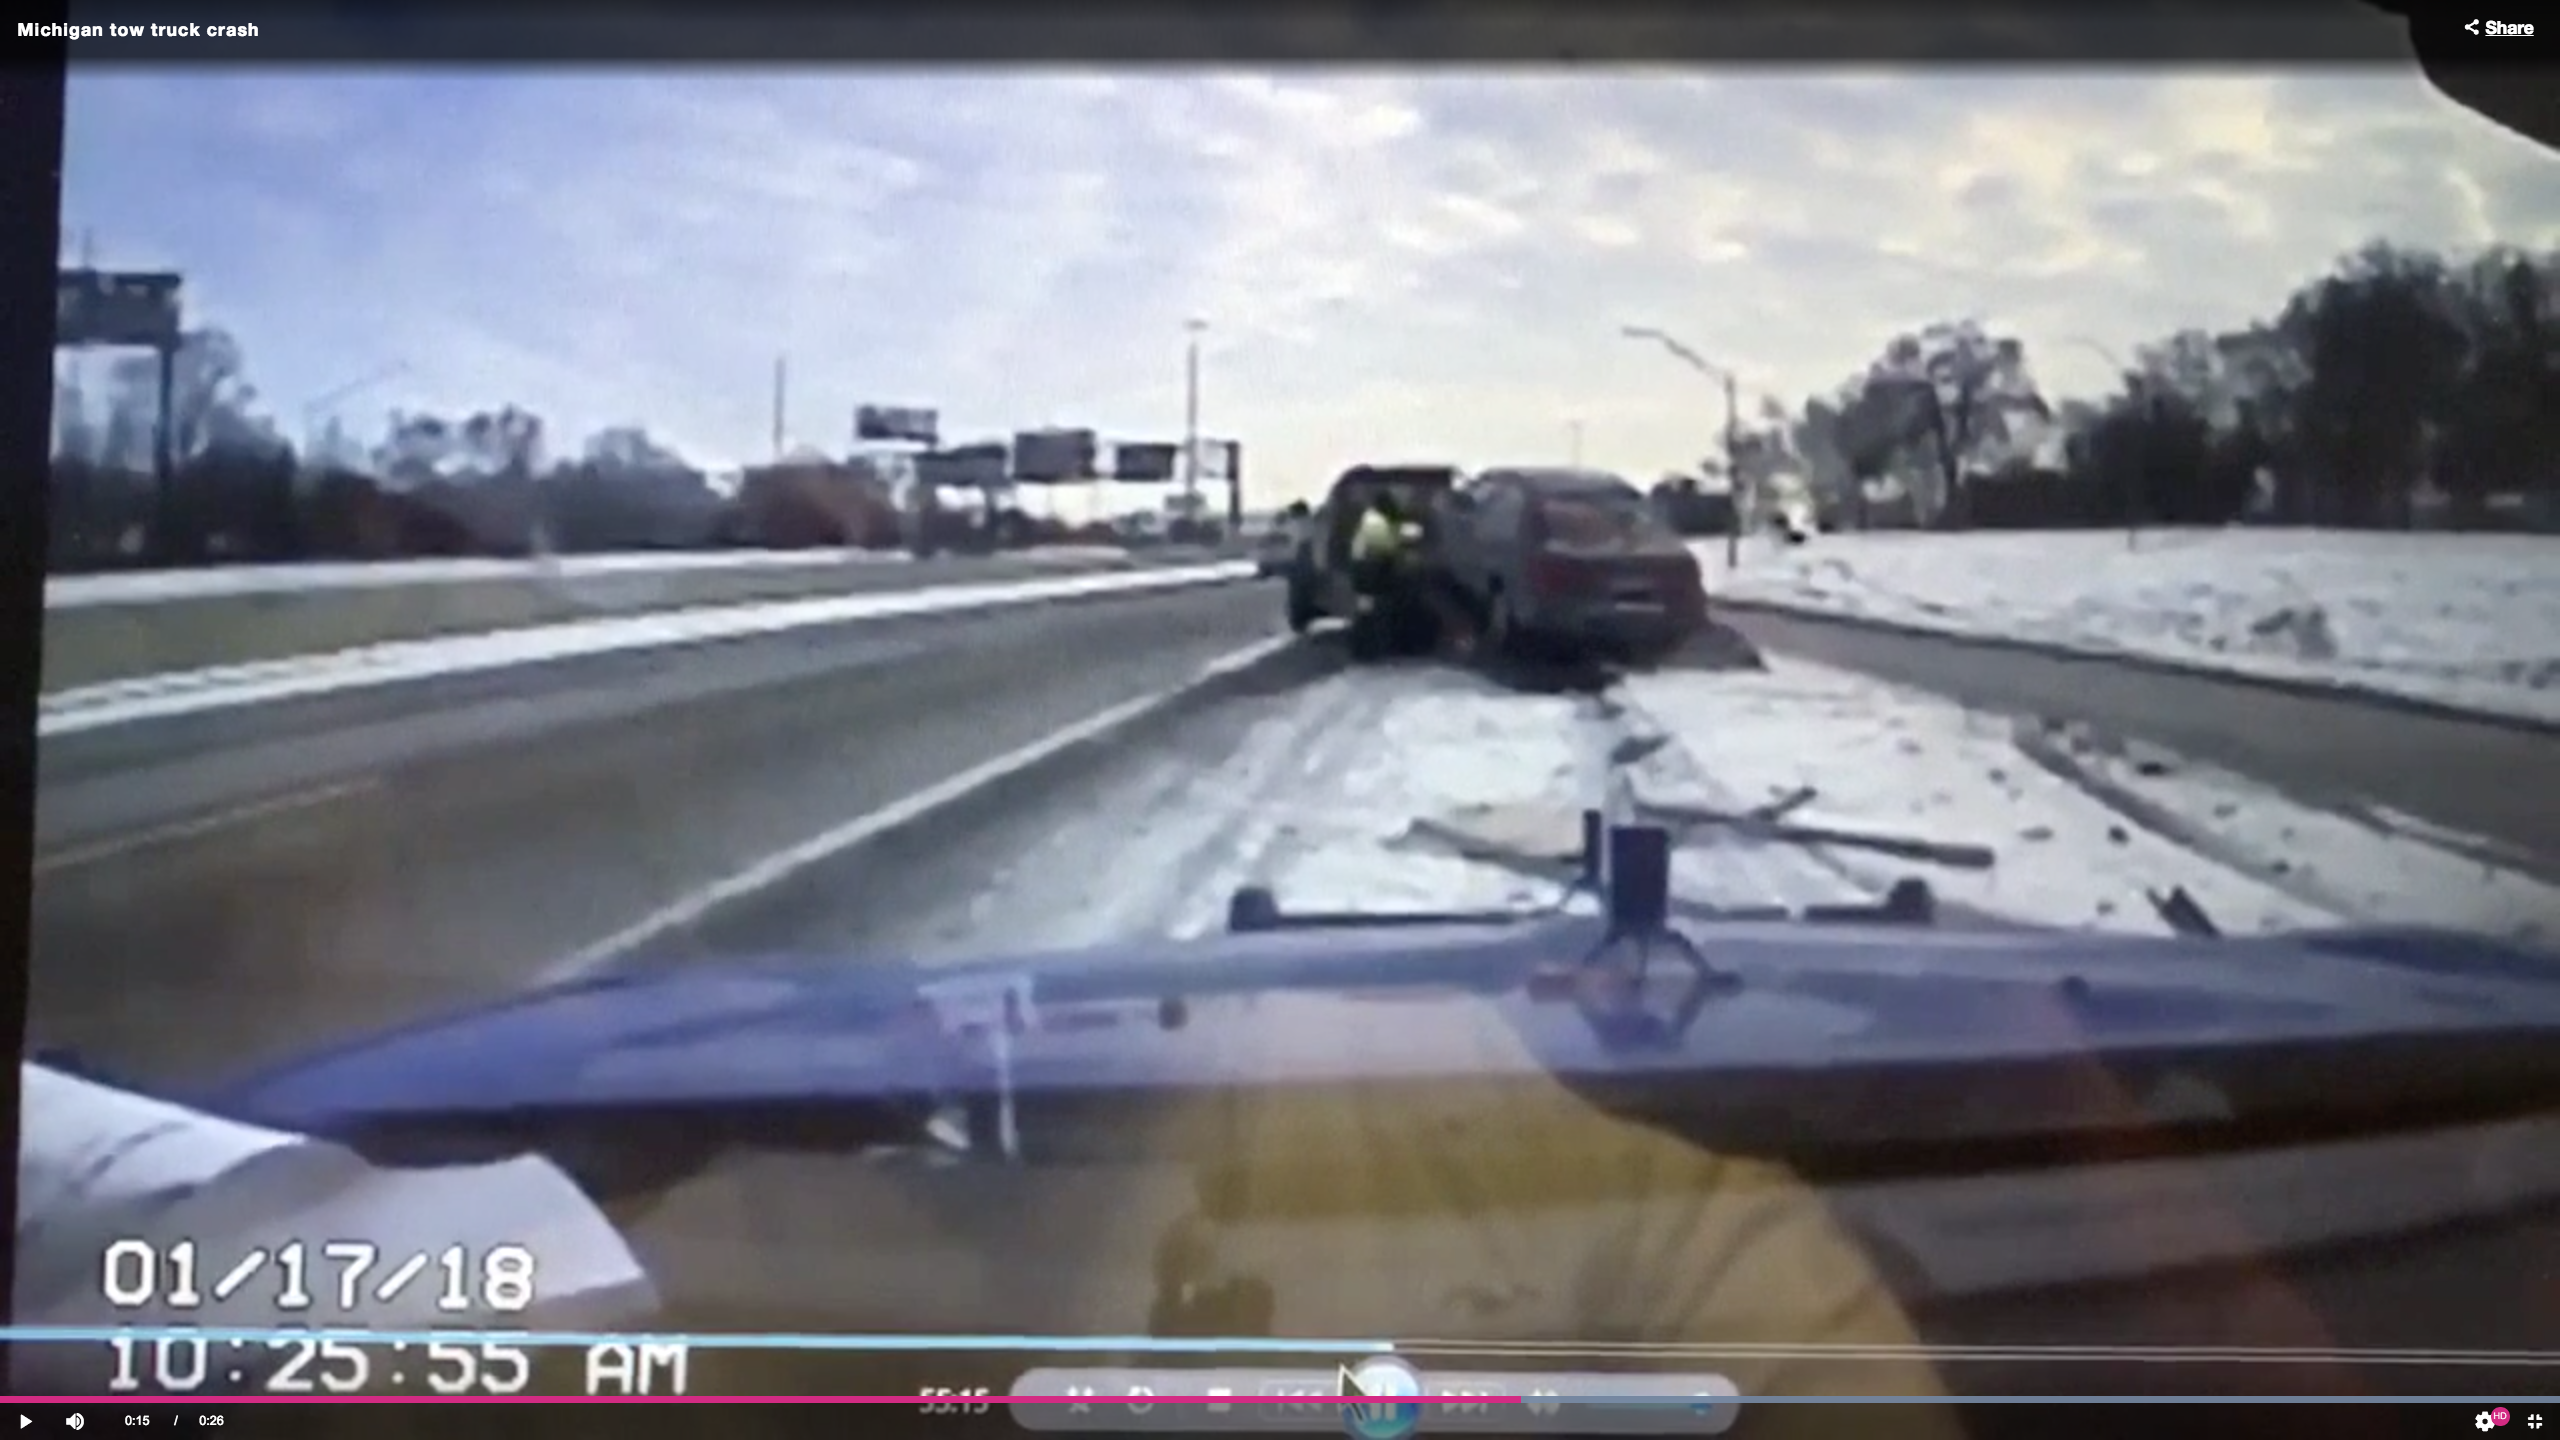 Mich. Tow Truck Crash